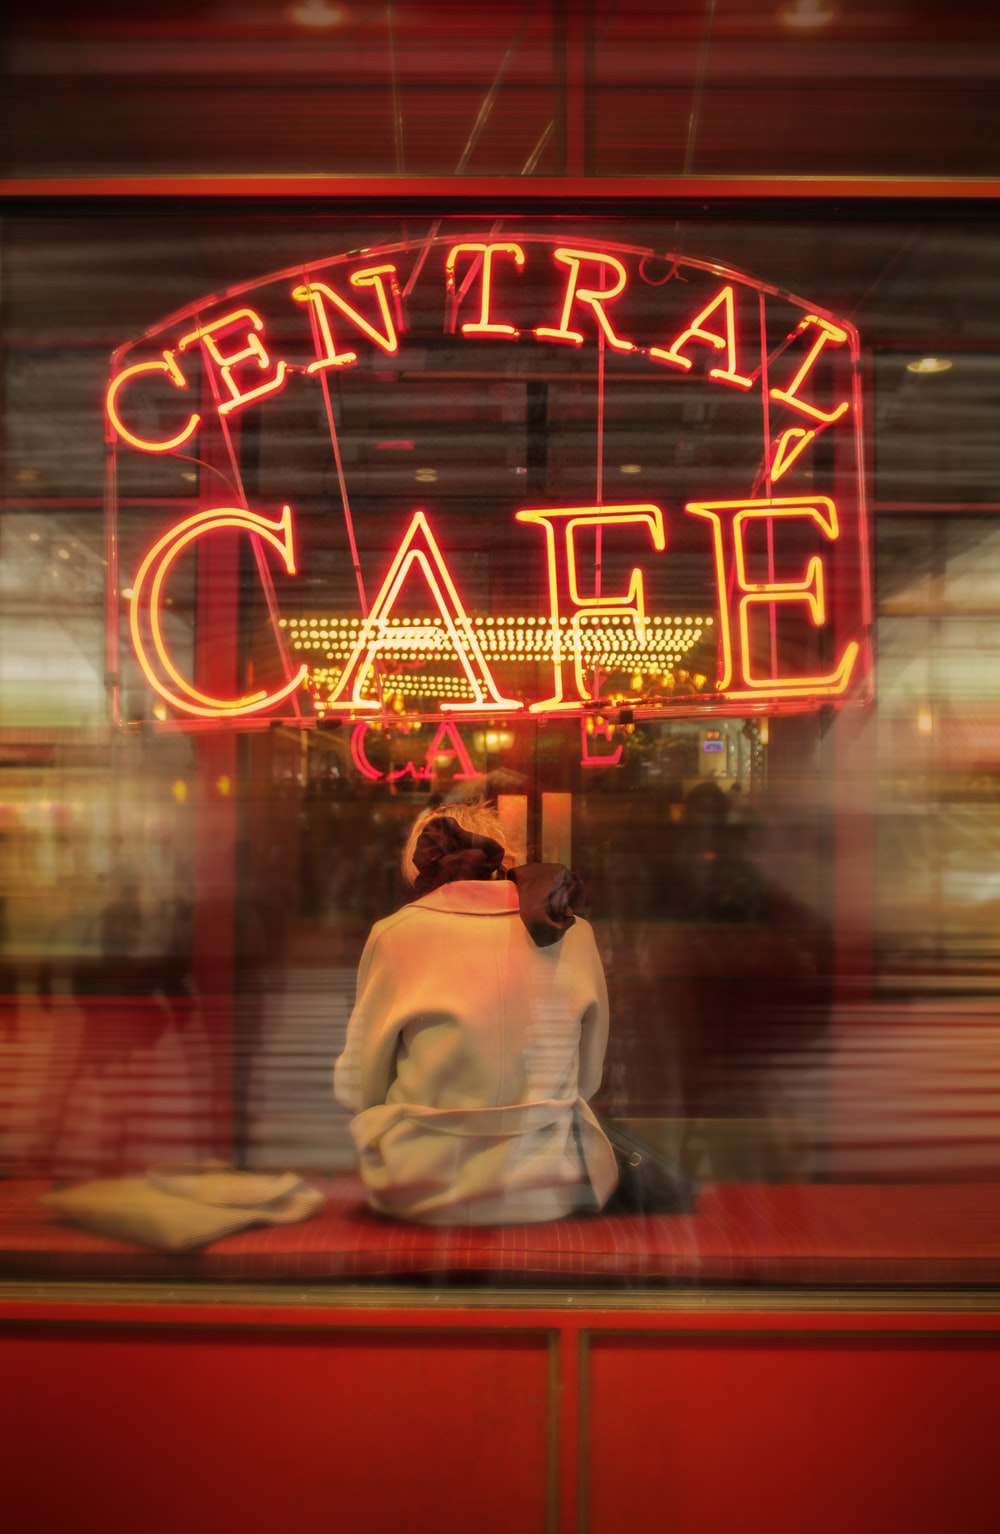 Central Cafe neon sign